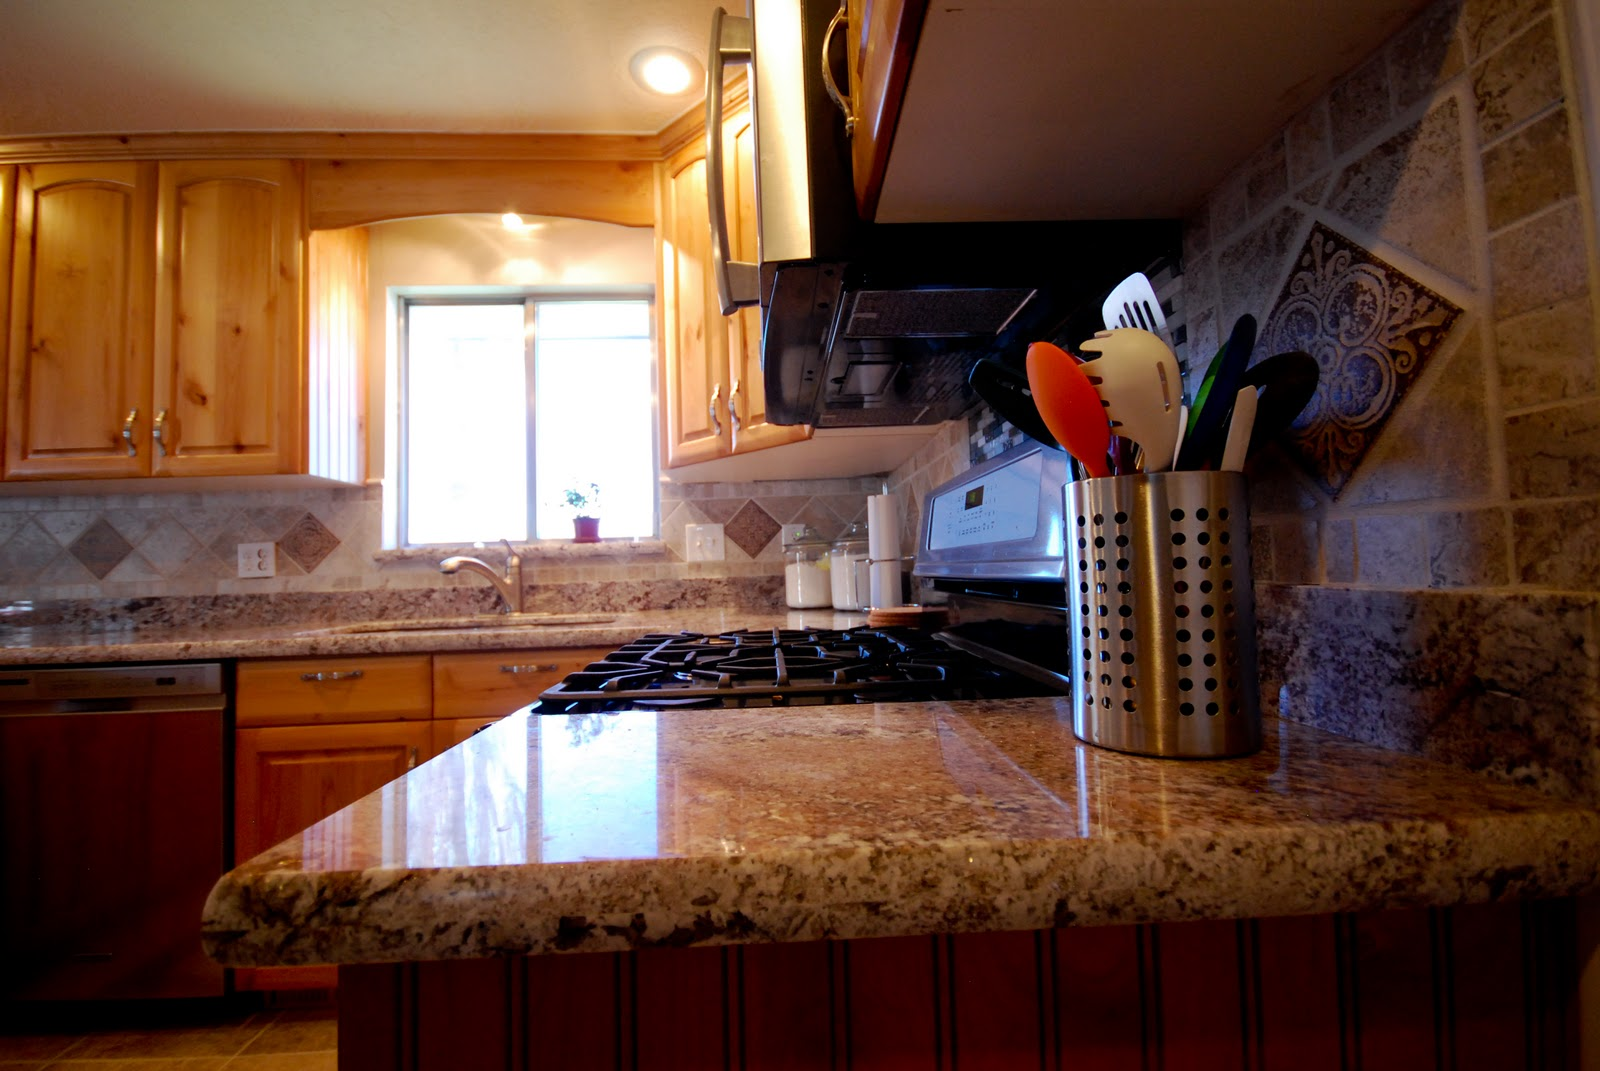 Bianco Antico Granite Kitchen The Granite Gurus Bianco Antico Granite Kitchen From Mgs By Design